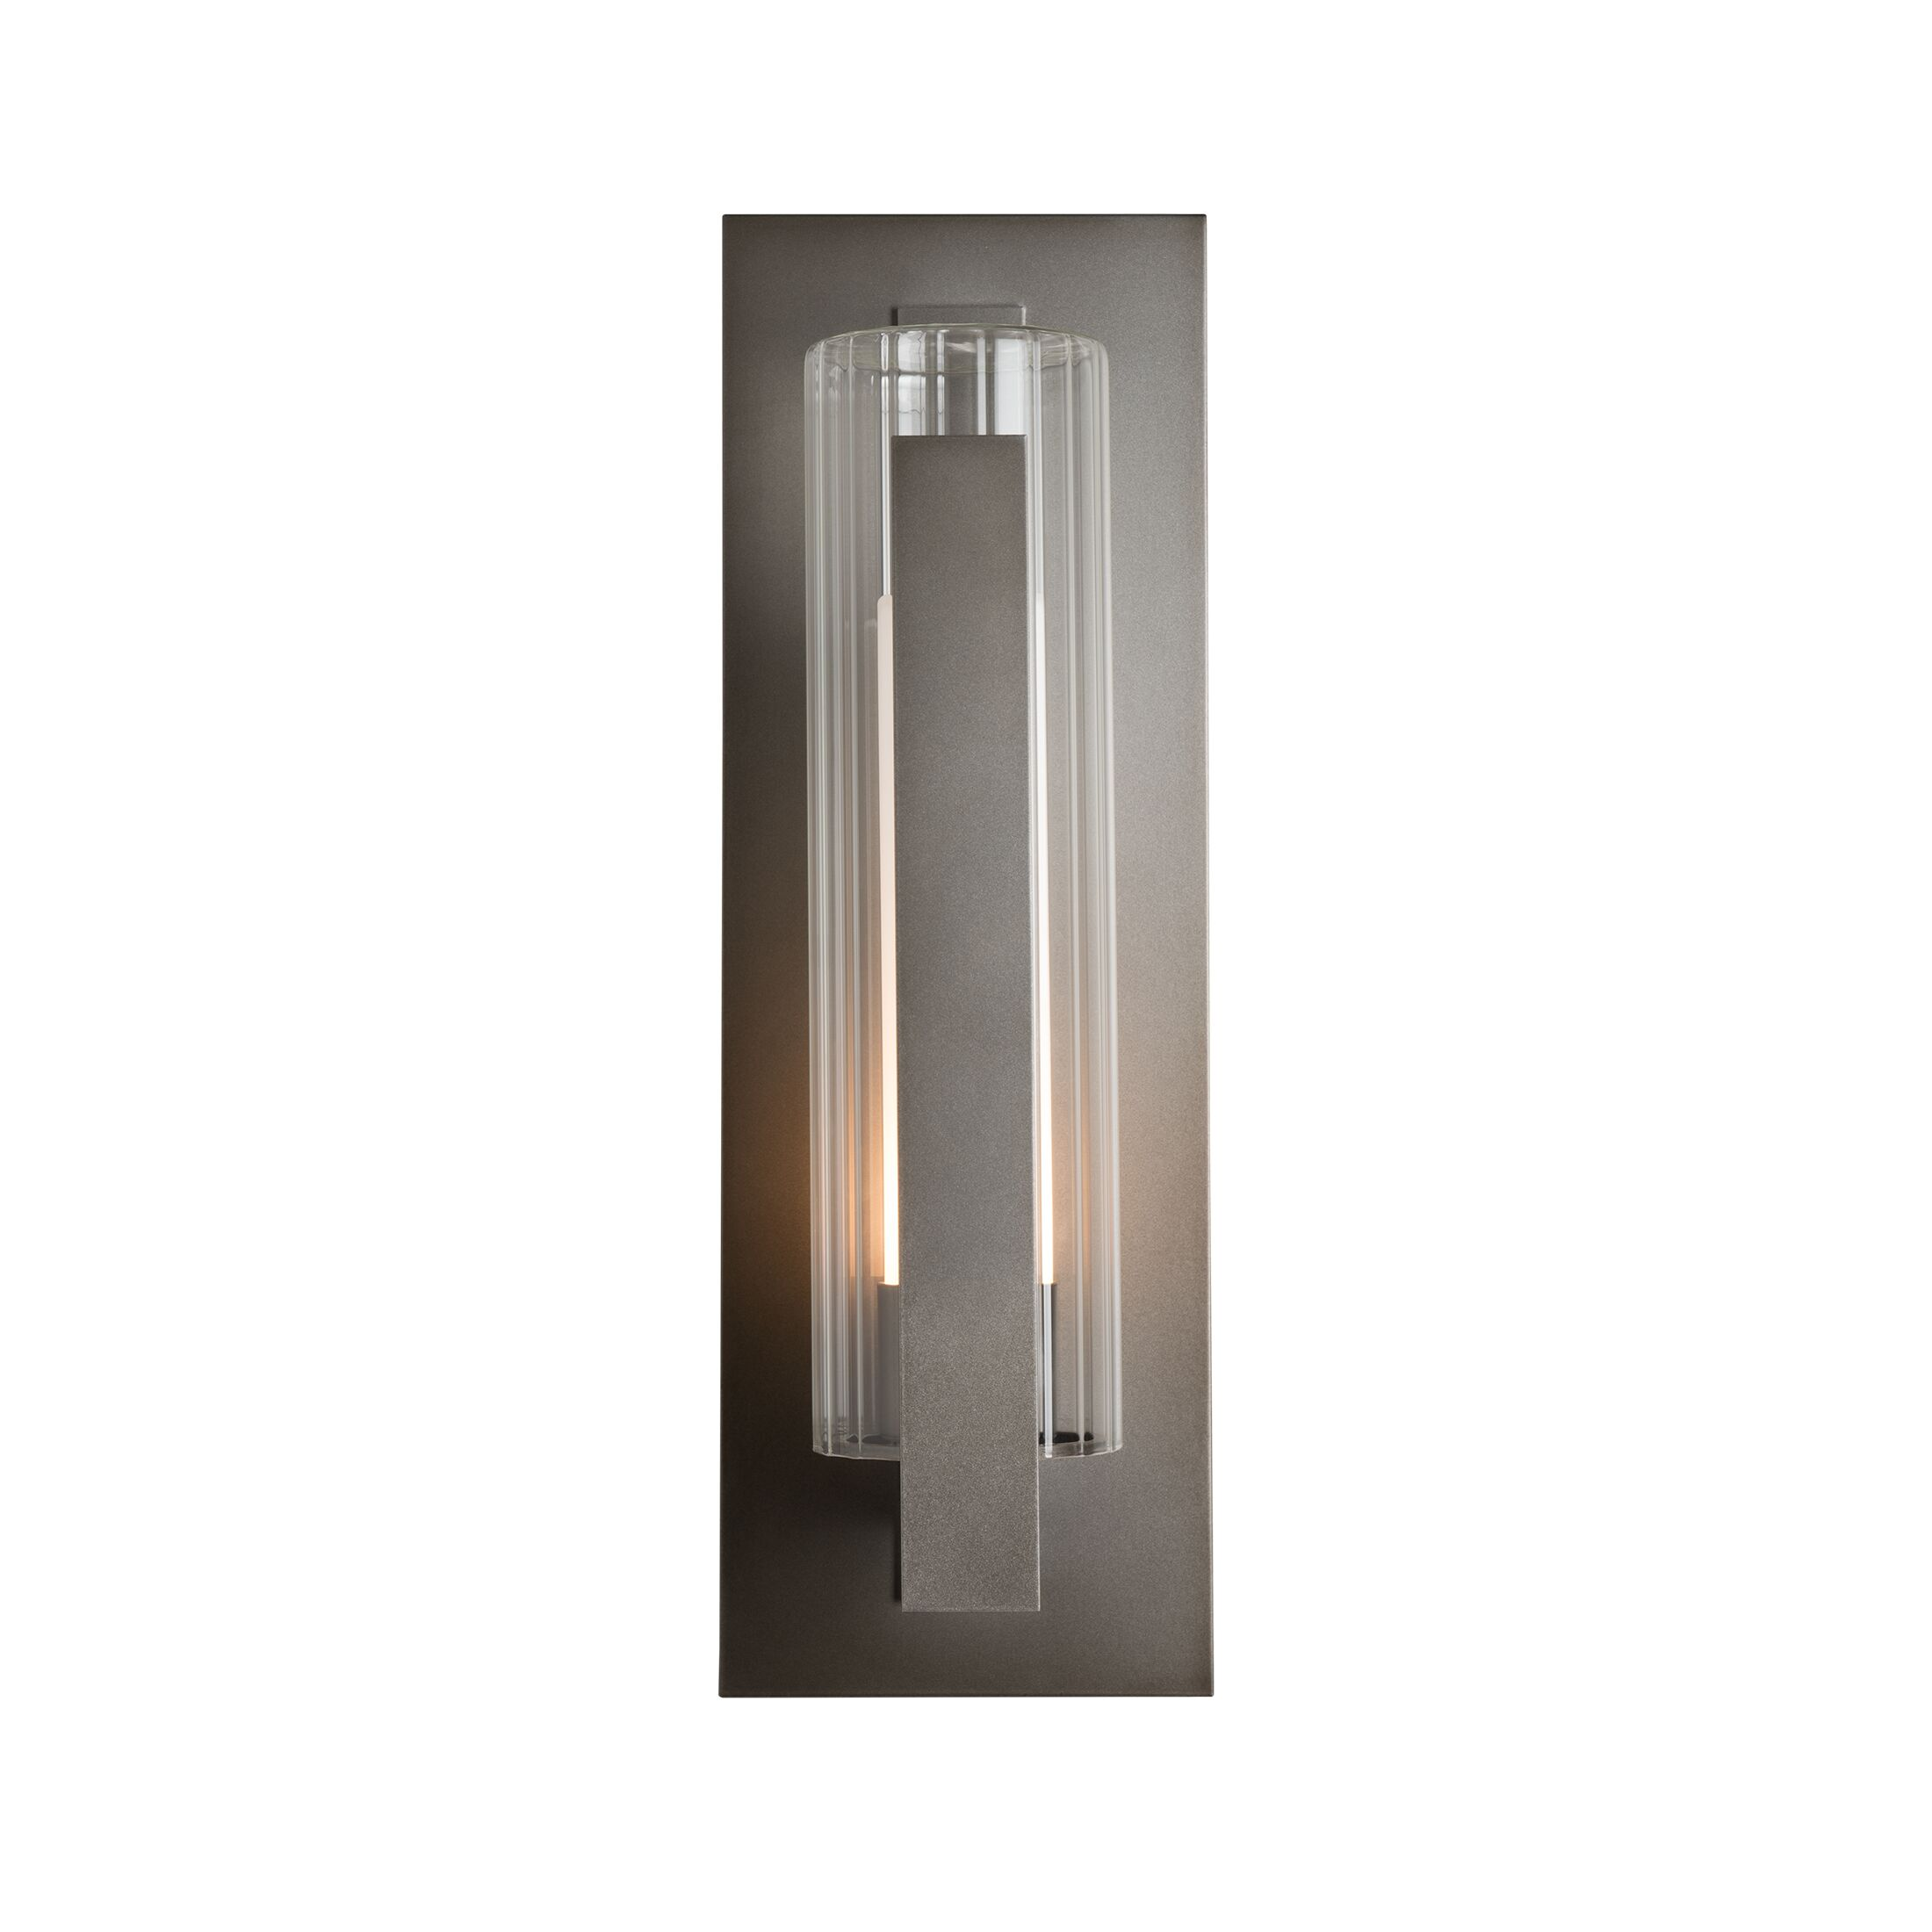 Thumbnail for Vertical Bar Fluted Glass Large Outdoor Sconce